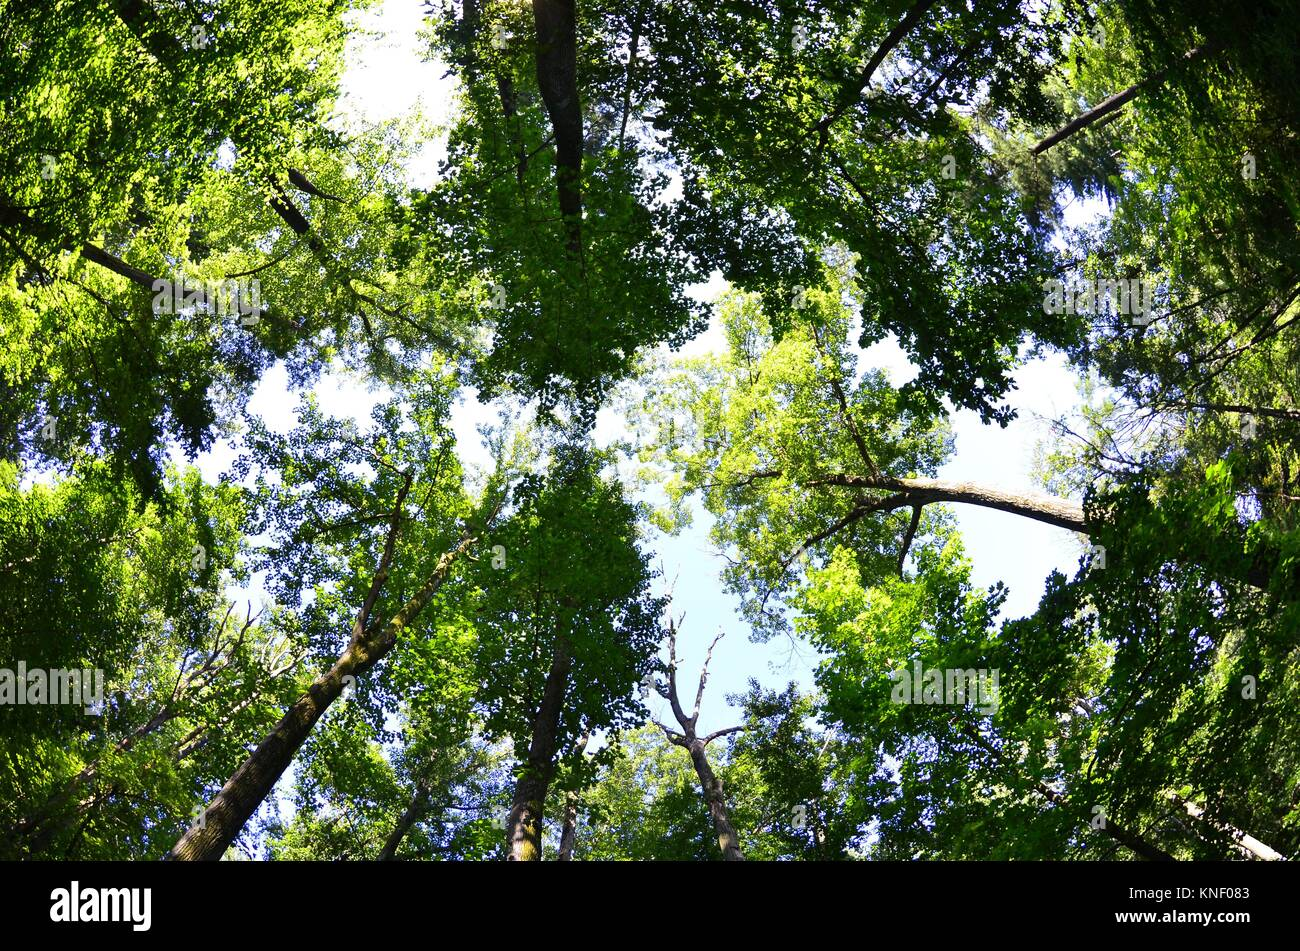 A forest canopy in a fisheye view Pennsylvania USA. - Stock Image & Forest Canopy Fisheye Stock Photos u0026 Forest Canopy Fisheye Stock ...